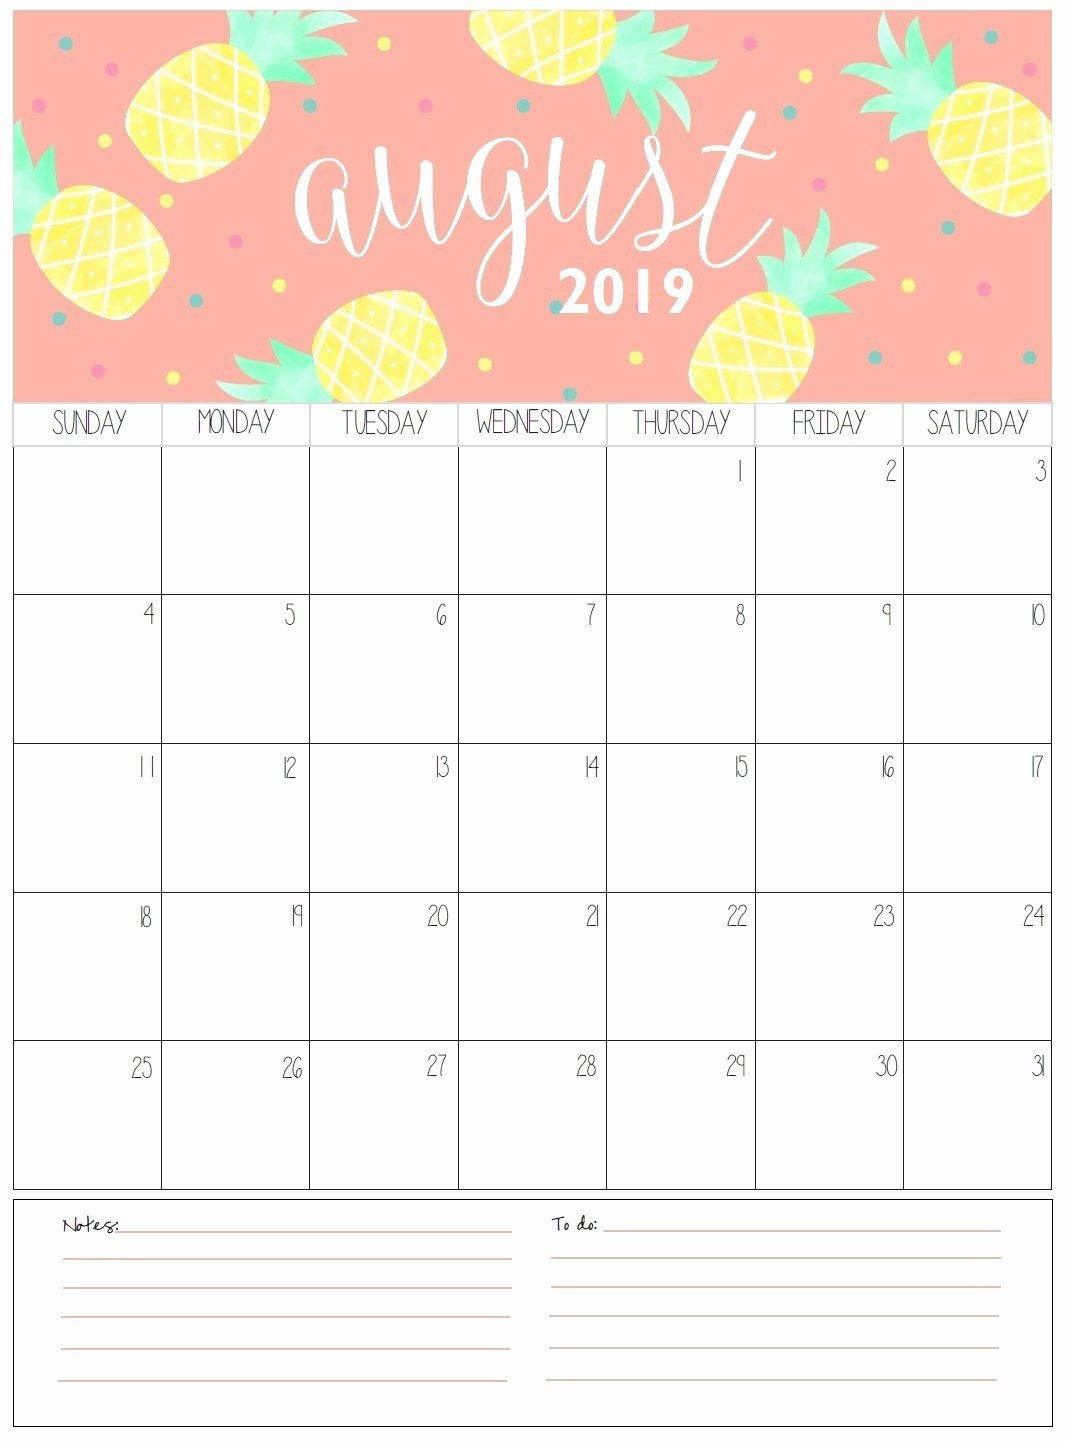 Free Calendar And Holidays – Download Free Calendar, Online Calendar Calendar 2019 Print Free